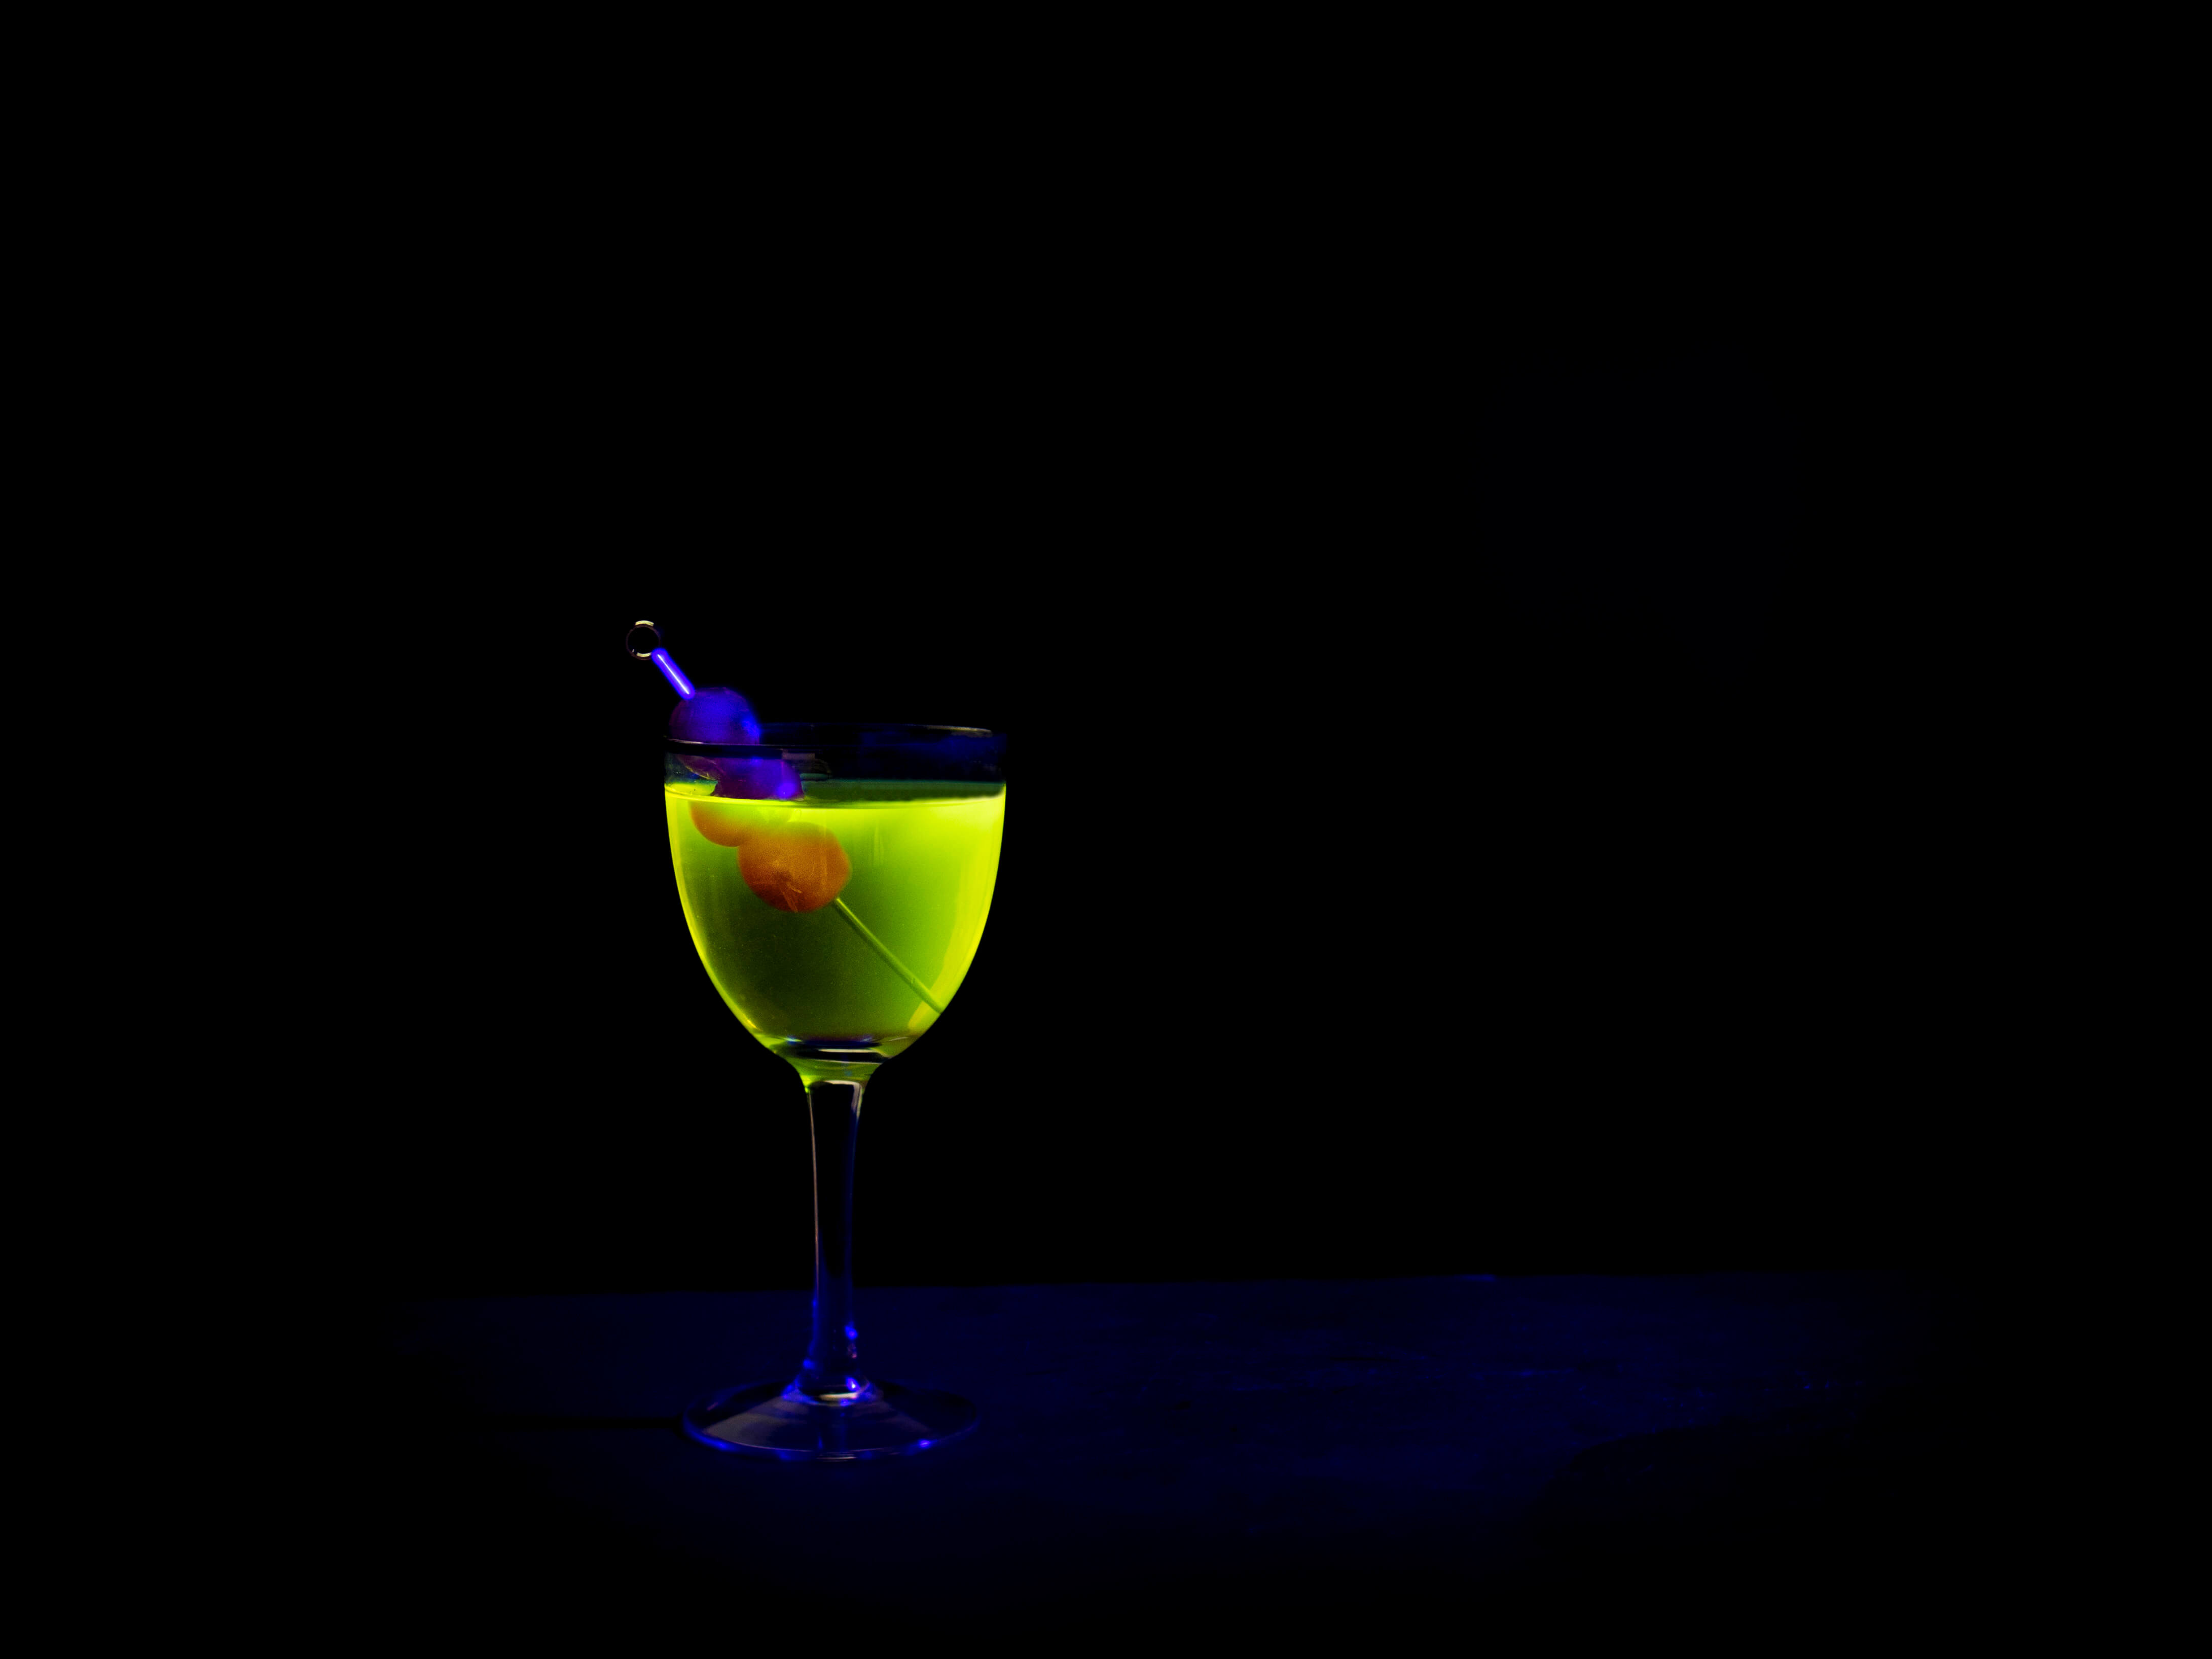 The Illumination cocktail created by Rael Petit featuring elit Vodka, available at Delilah NYC for World Martini Day - What's Shakin' week of June 12